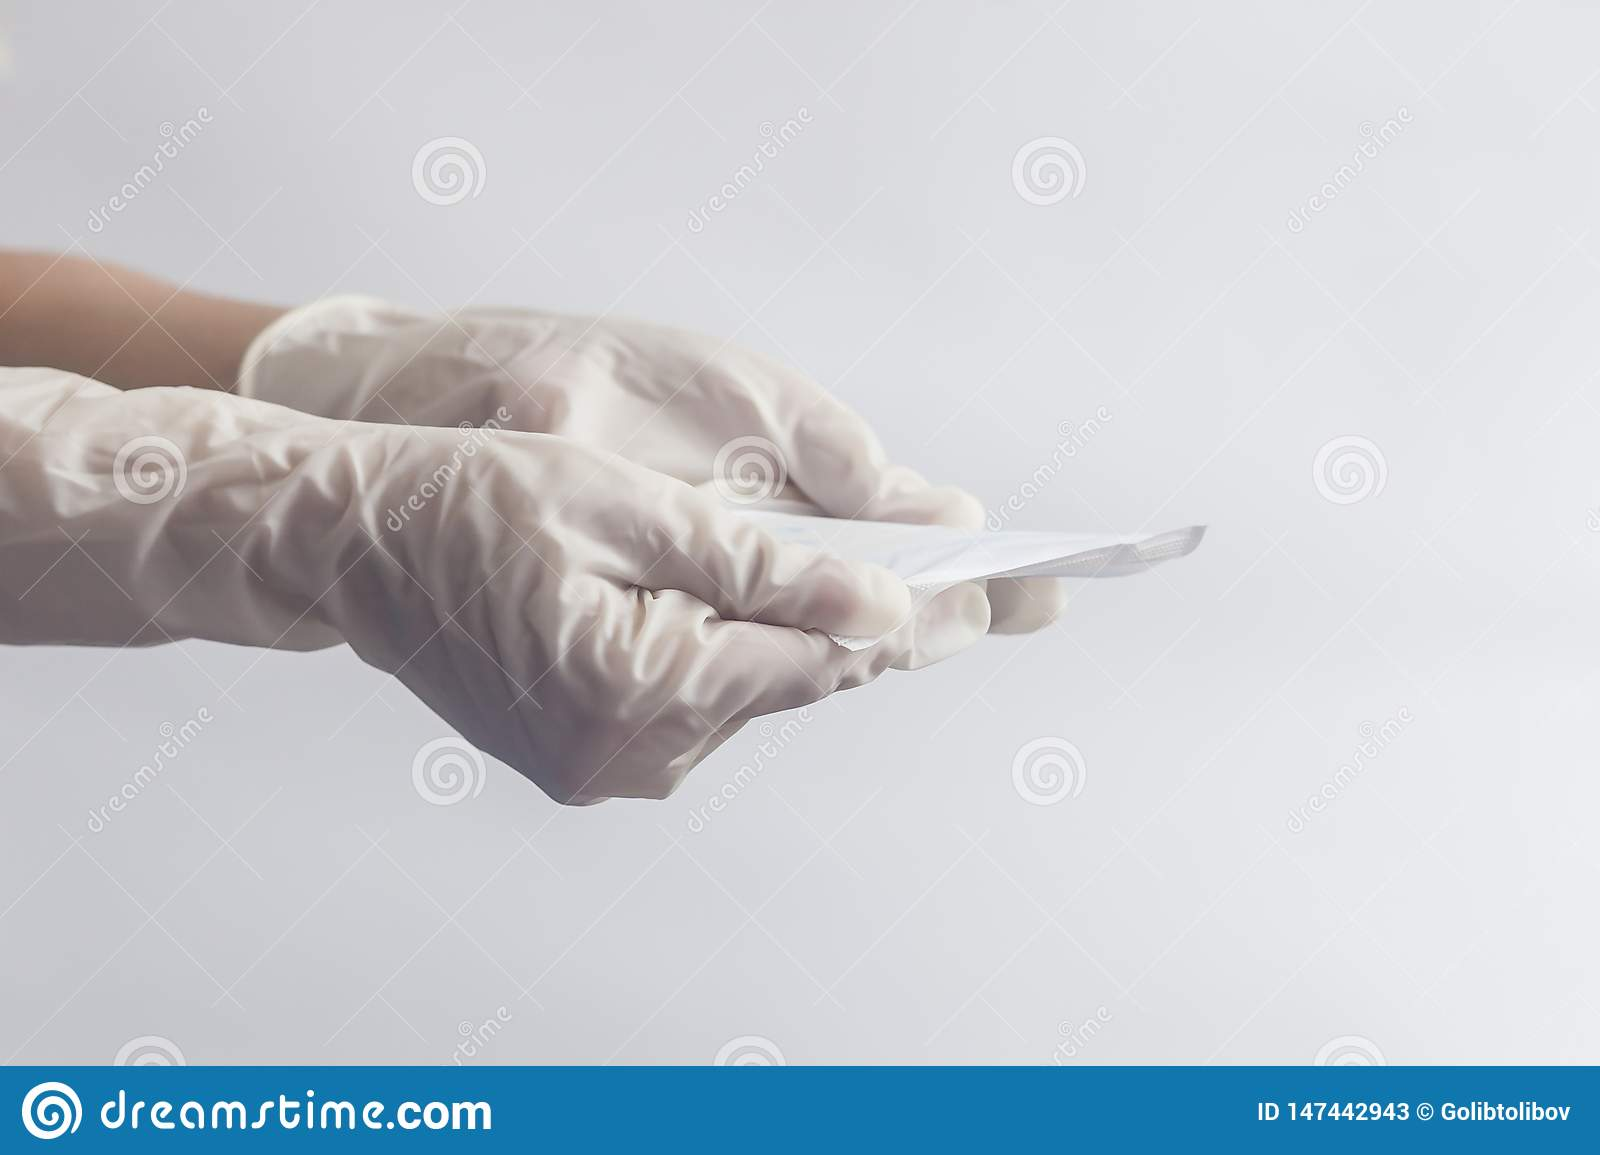 Female`s hygiene products. Woman`s hands in medical gloves holding sanitary napkins against white background. Period days concep